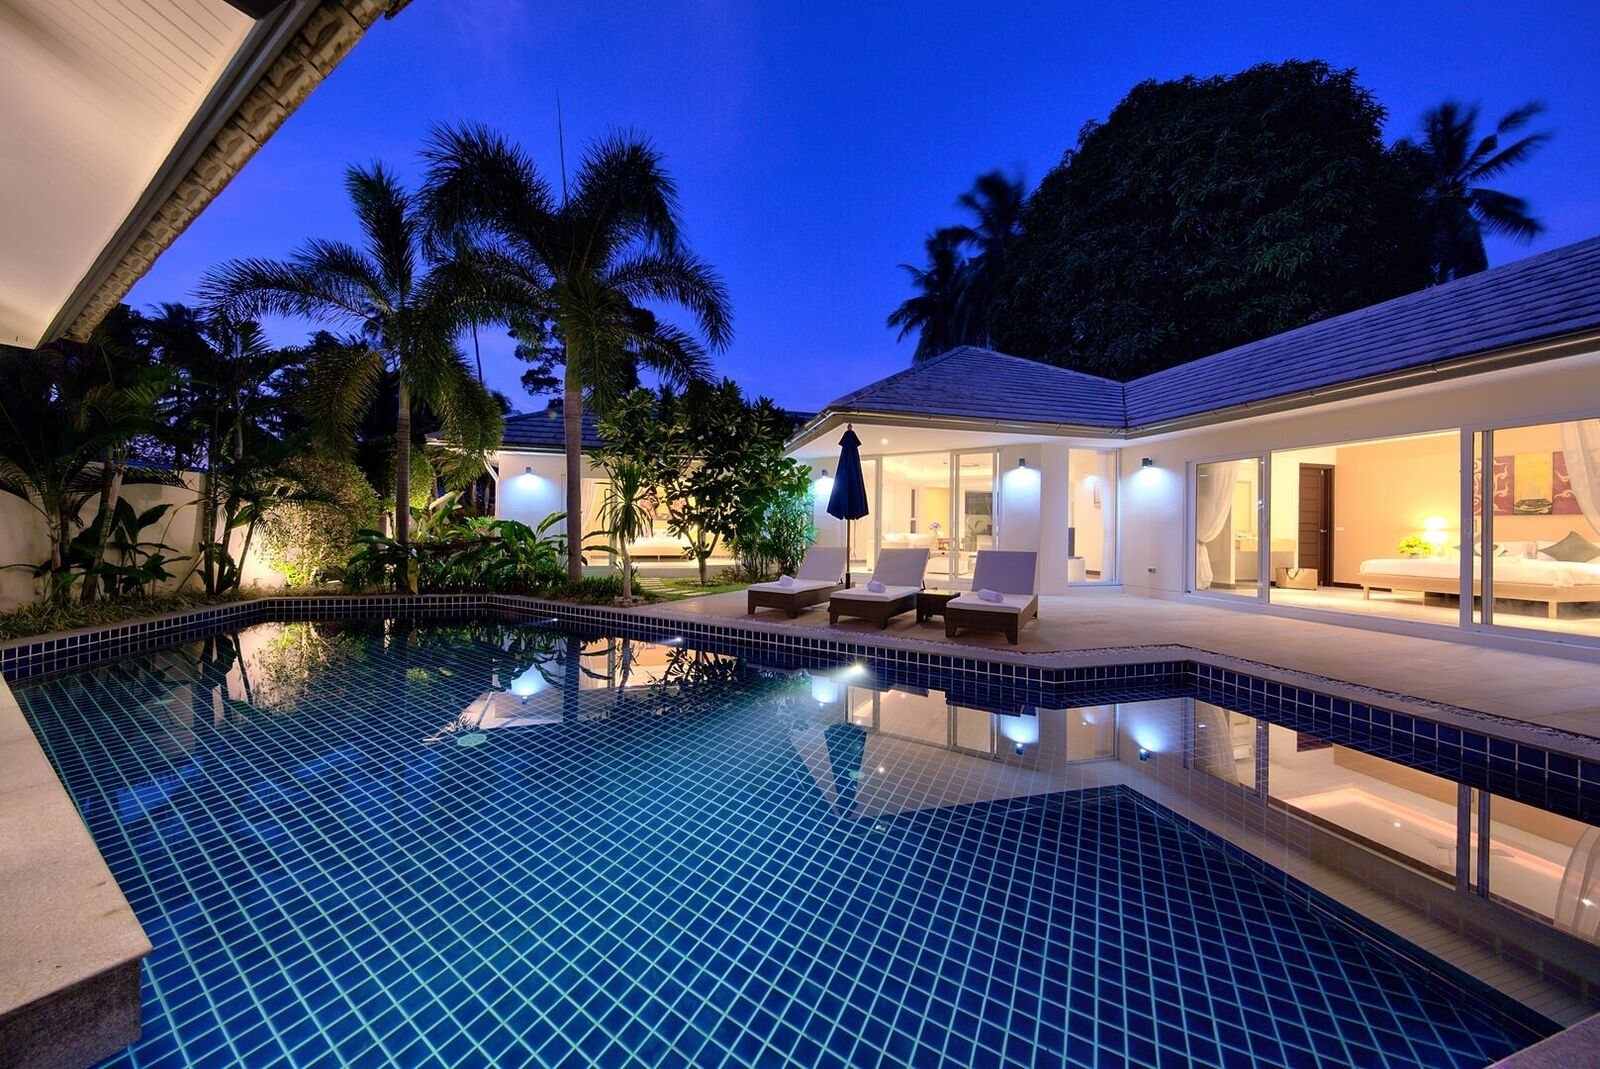 2 Bedroom Garden View Villa with Private Pool at Lipa Noi Koh Samui